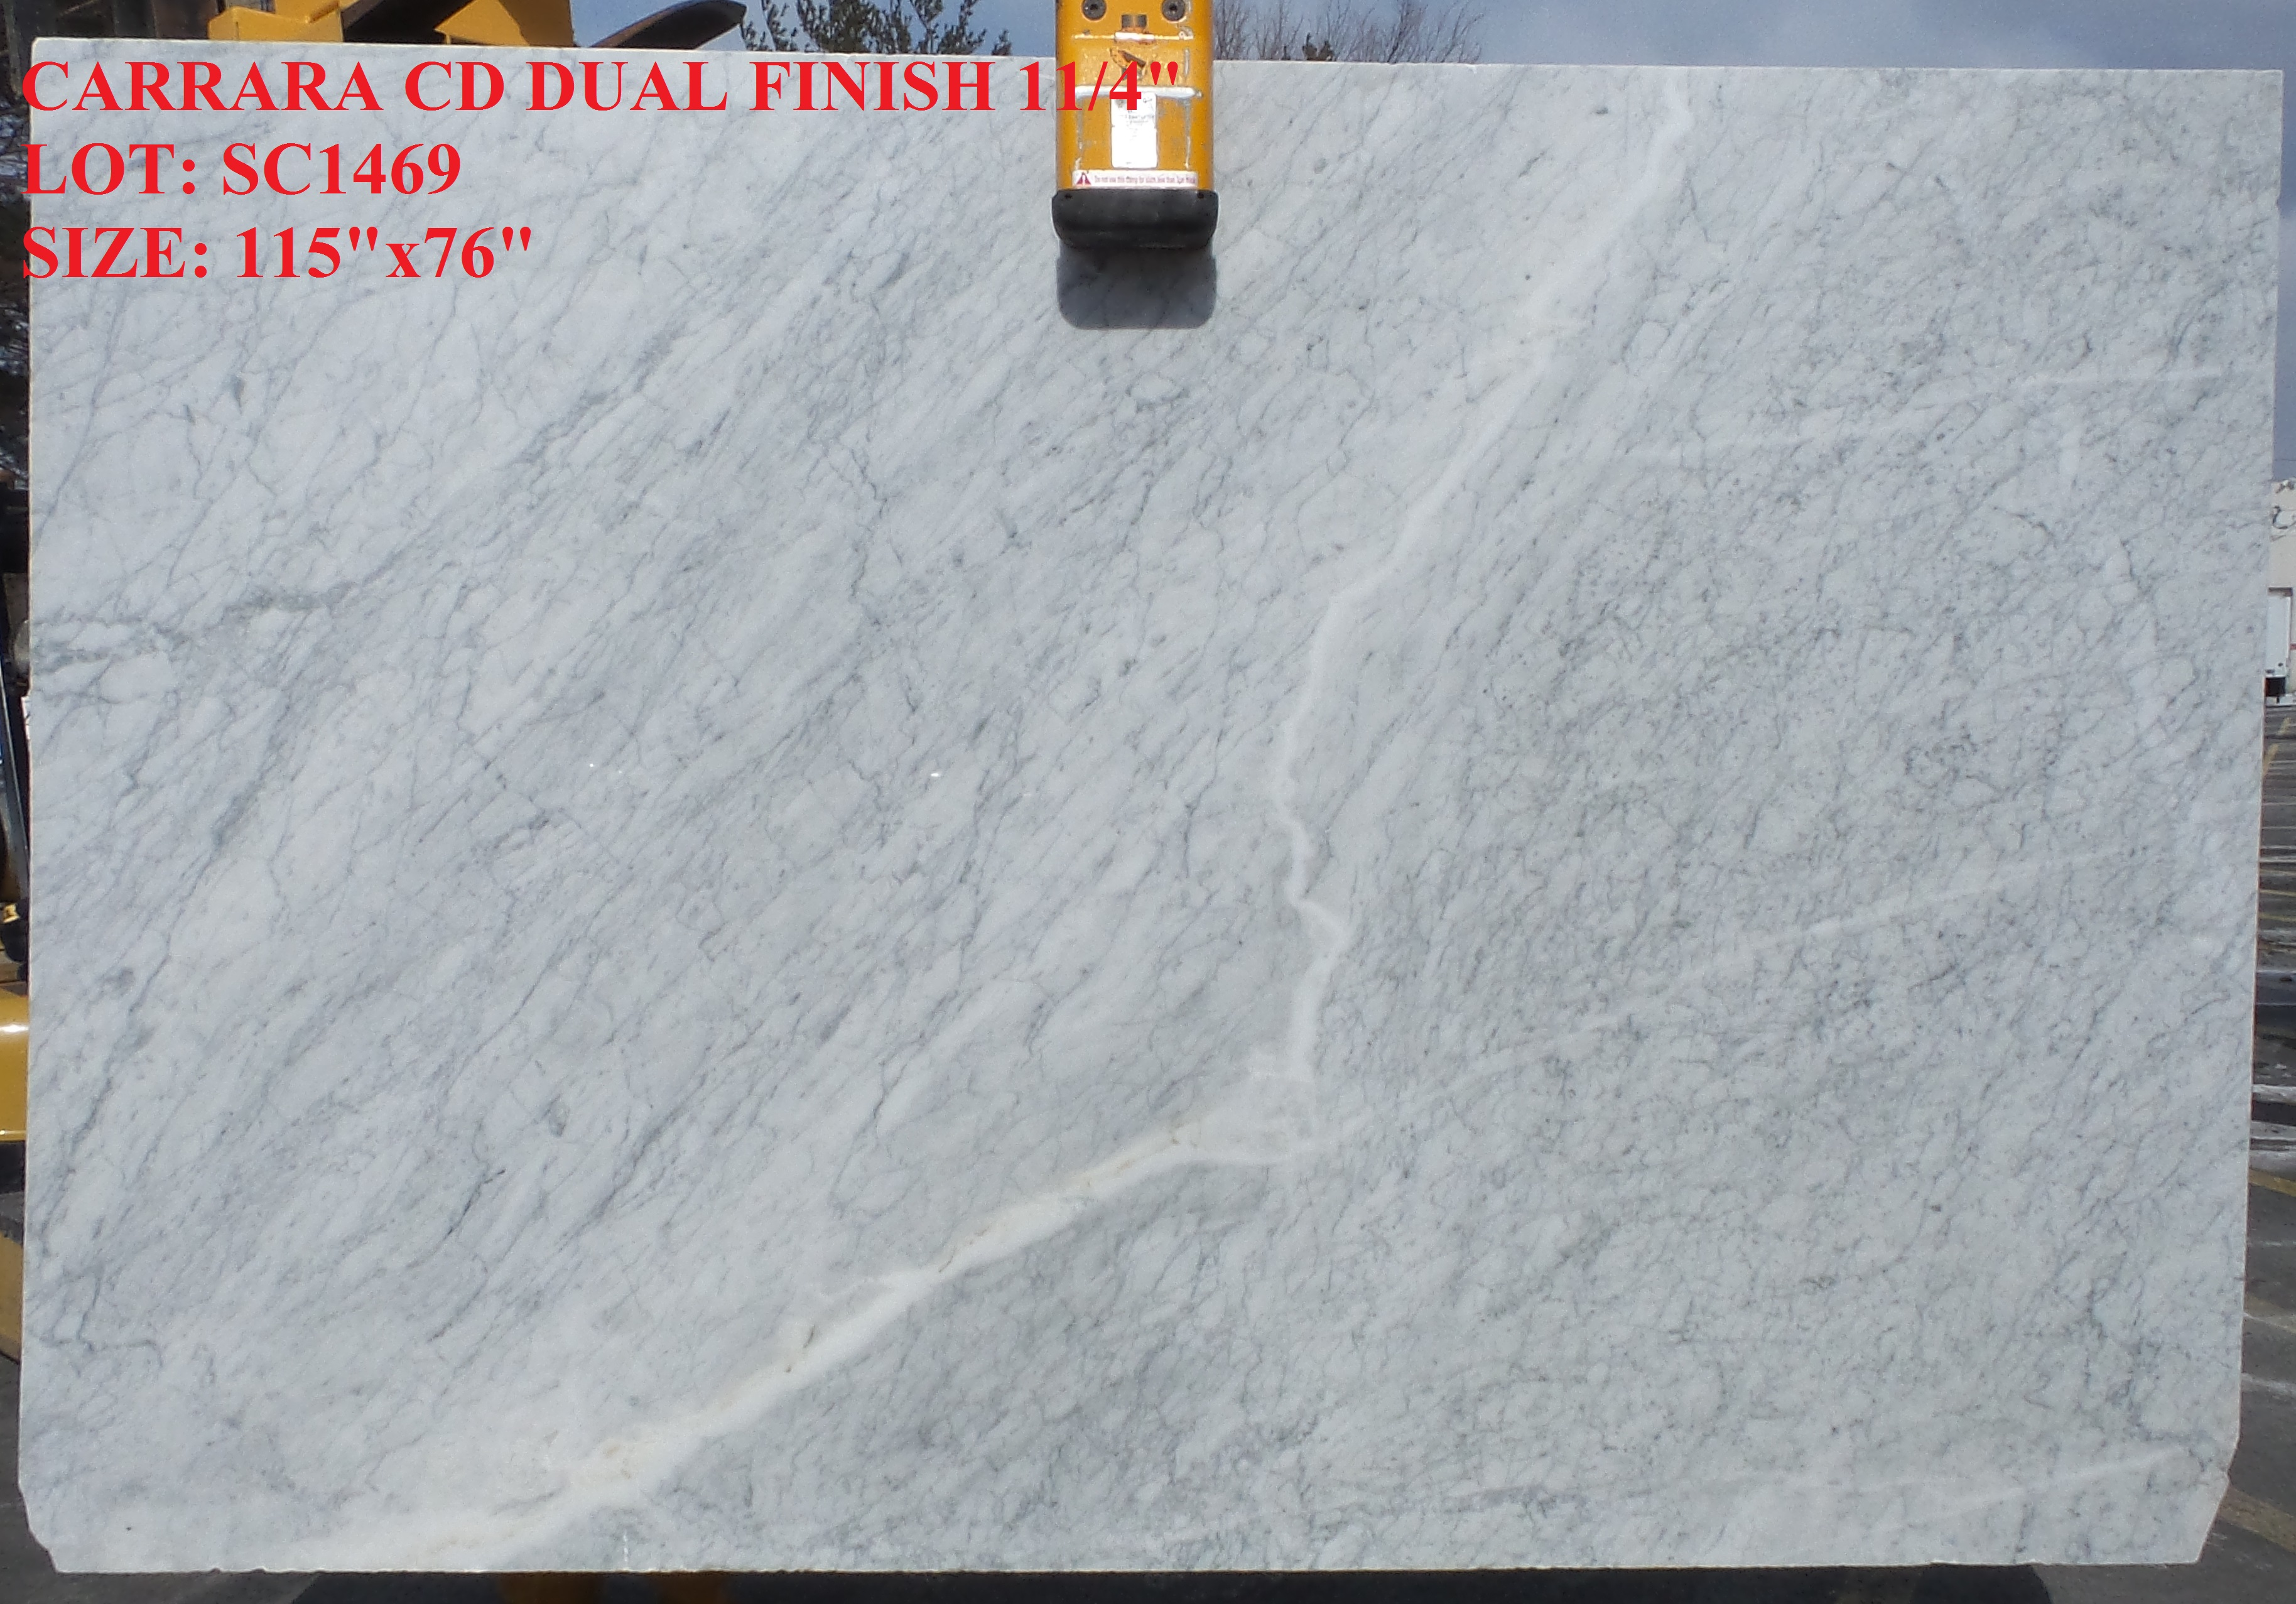 Carrara CD Dual finish